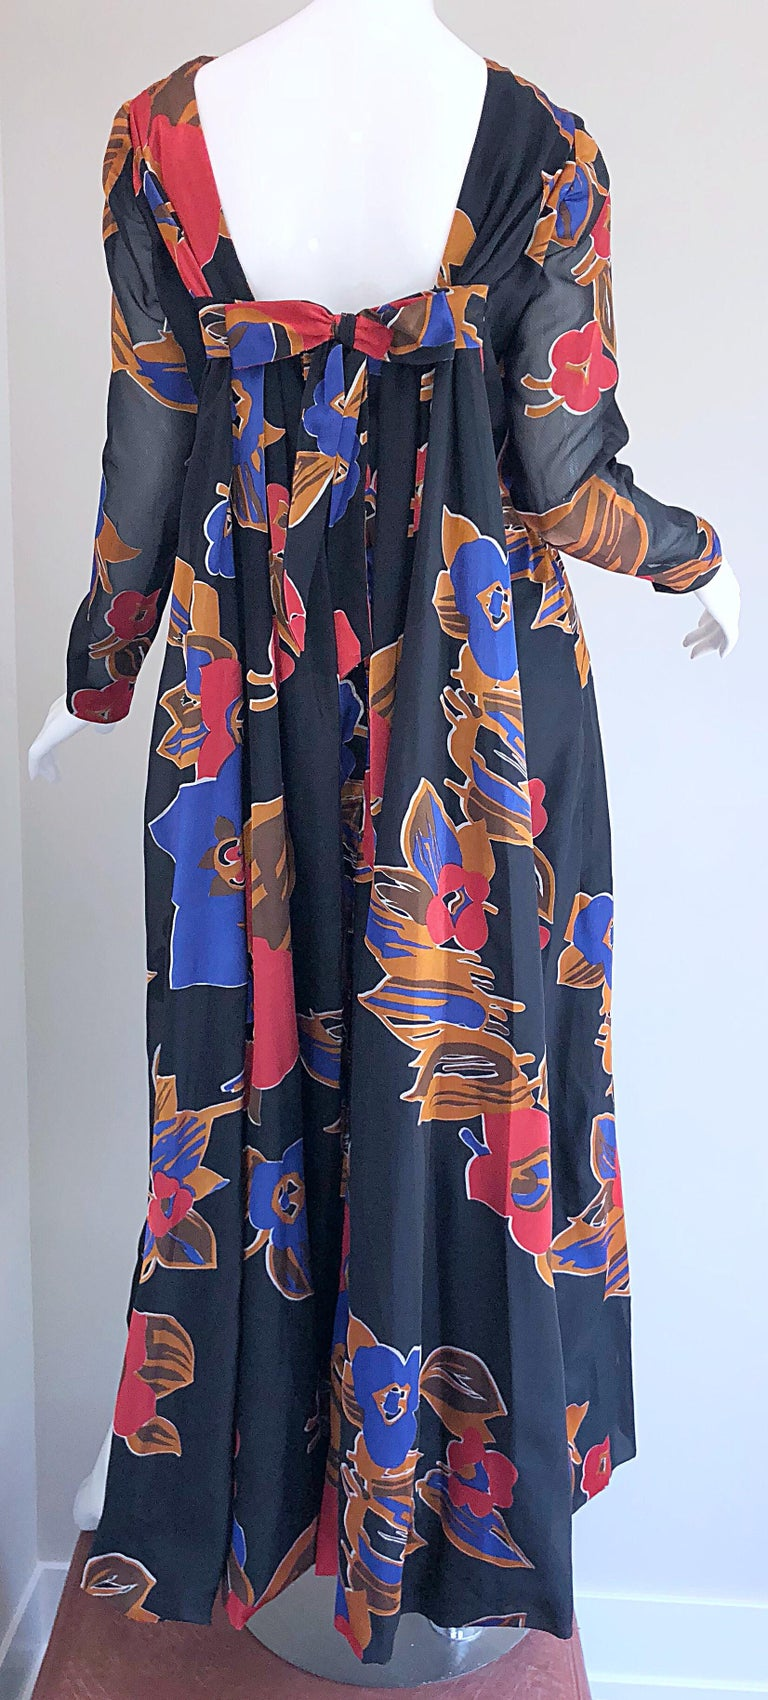 1960s John Boyle Bishop Black + Brown + Red Abstract Trained 60s Gown Maxi Dress For Sale 11